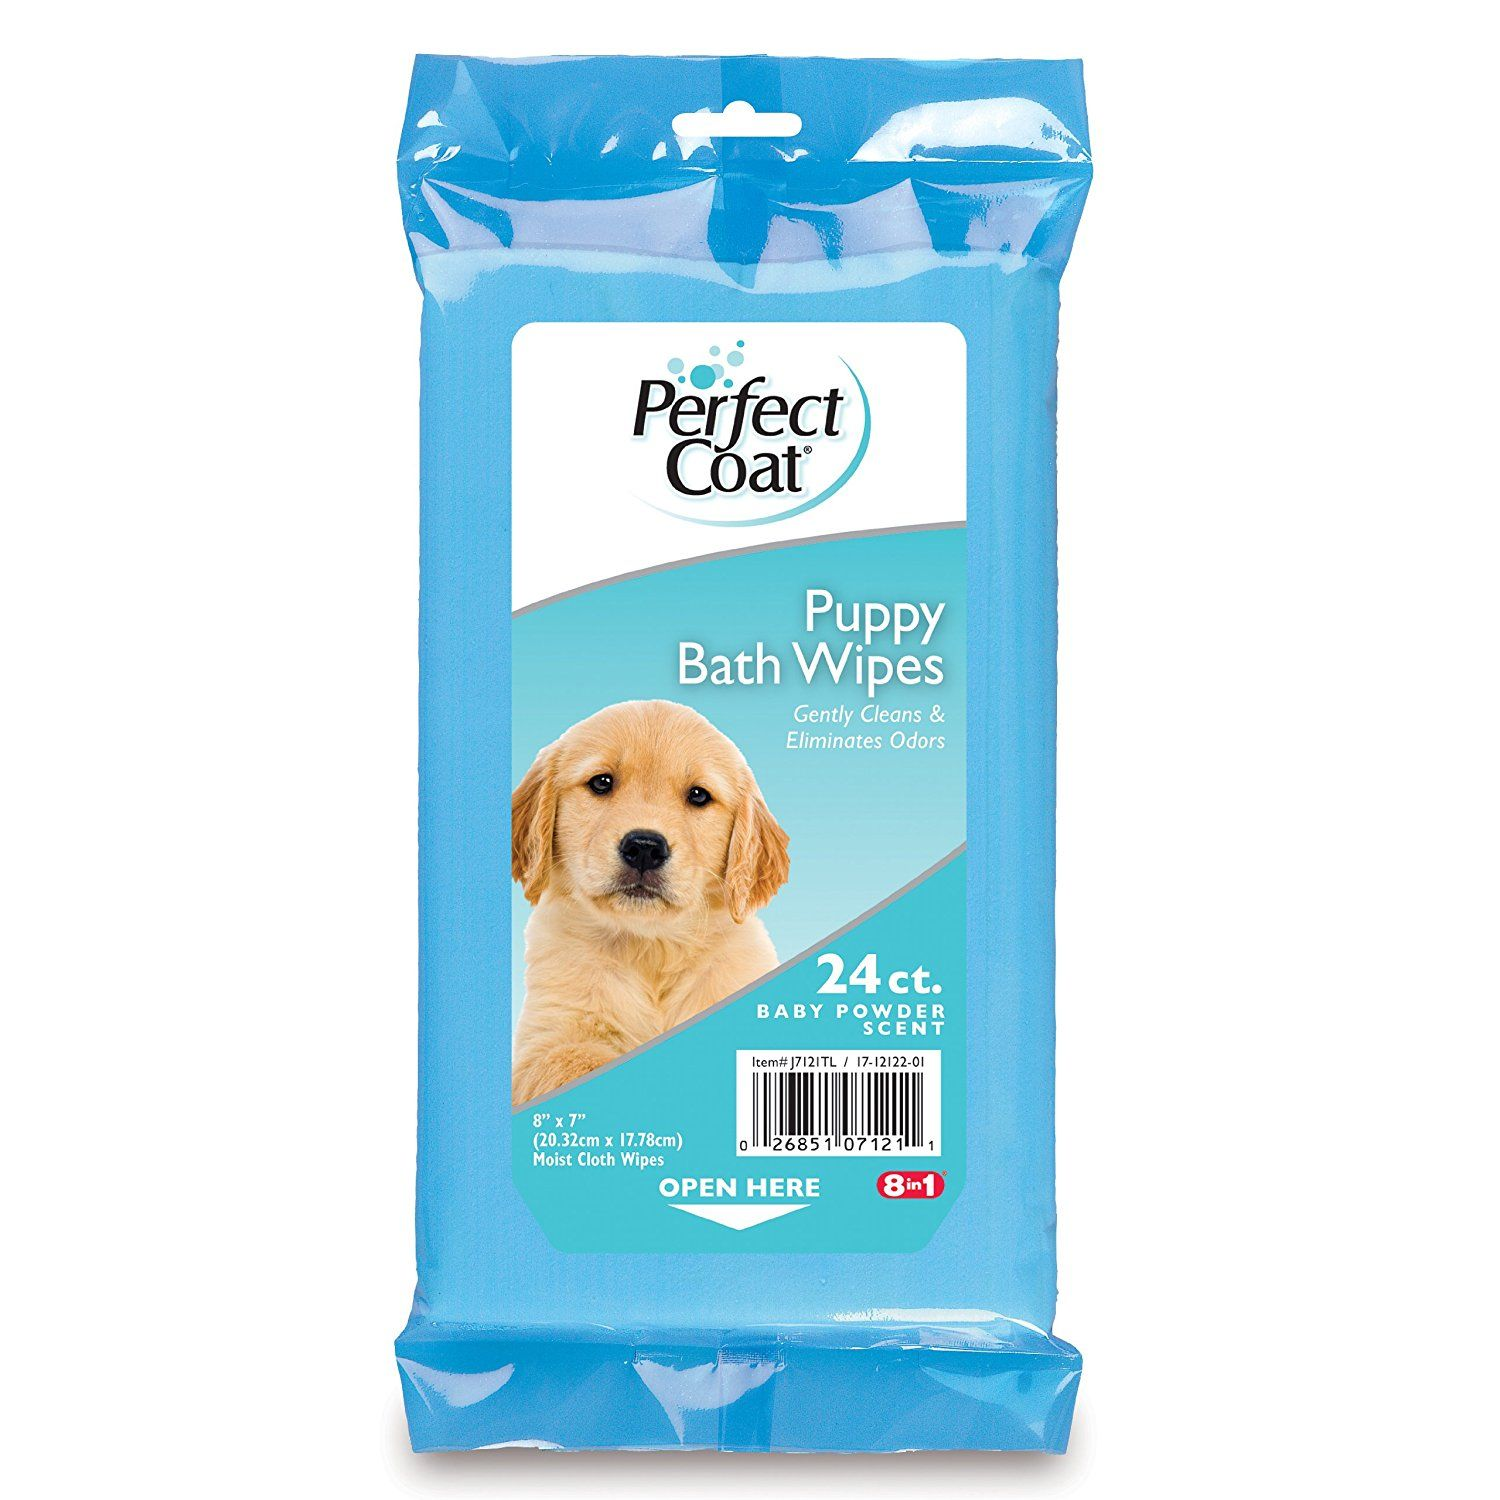 Perfect Coat Puppy Bath Wipes 24 Count J7121tl Special Dog